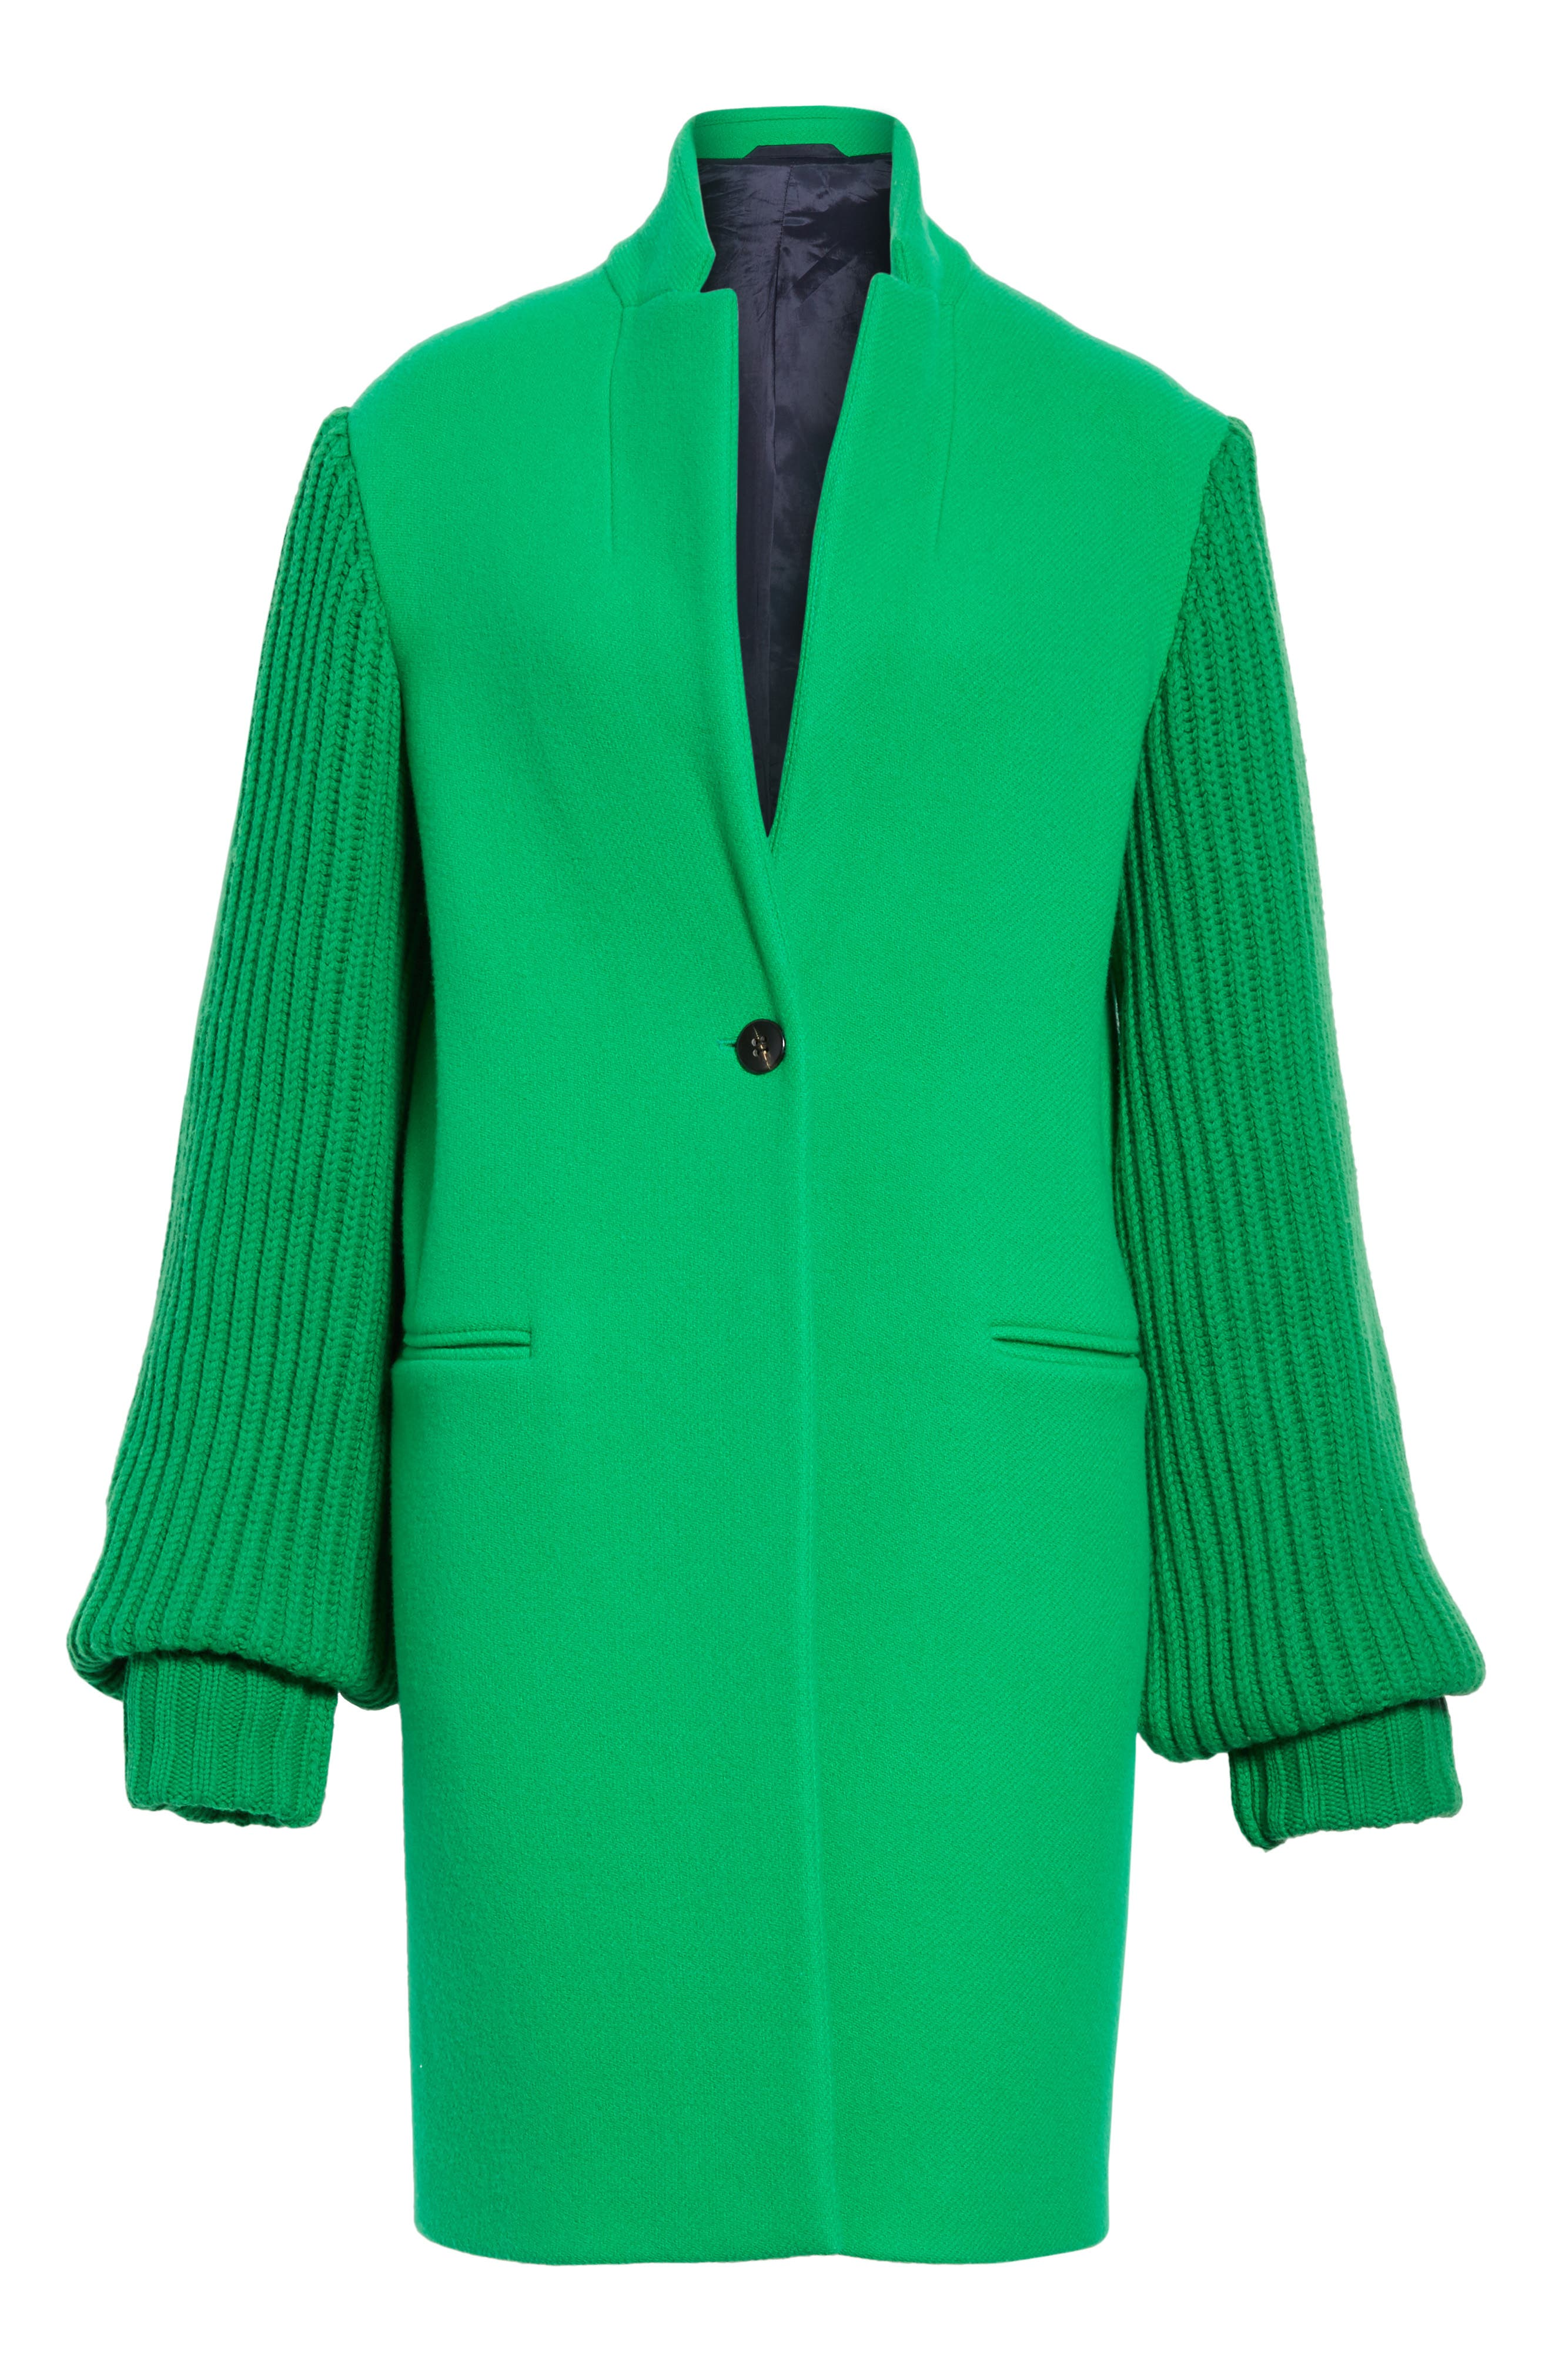 Ask Me Later Embroidered Knit Sleeve Coat,                             Alternate thumbnail 5, color,                             300